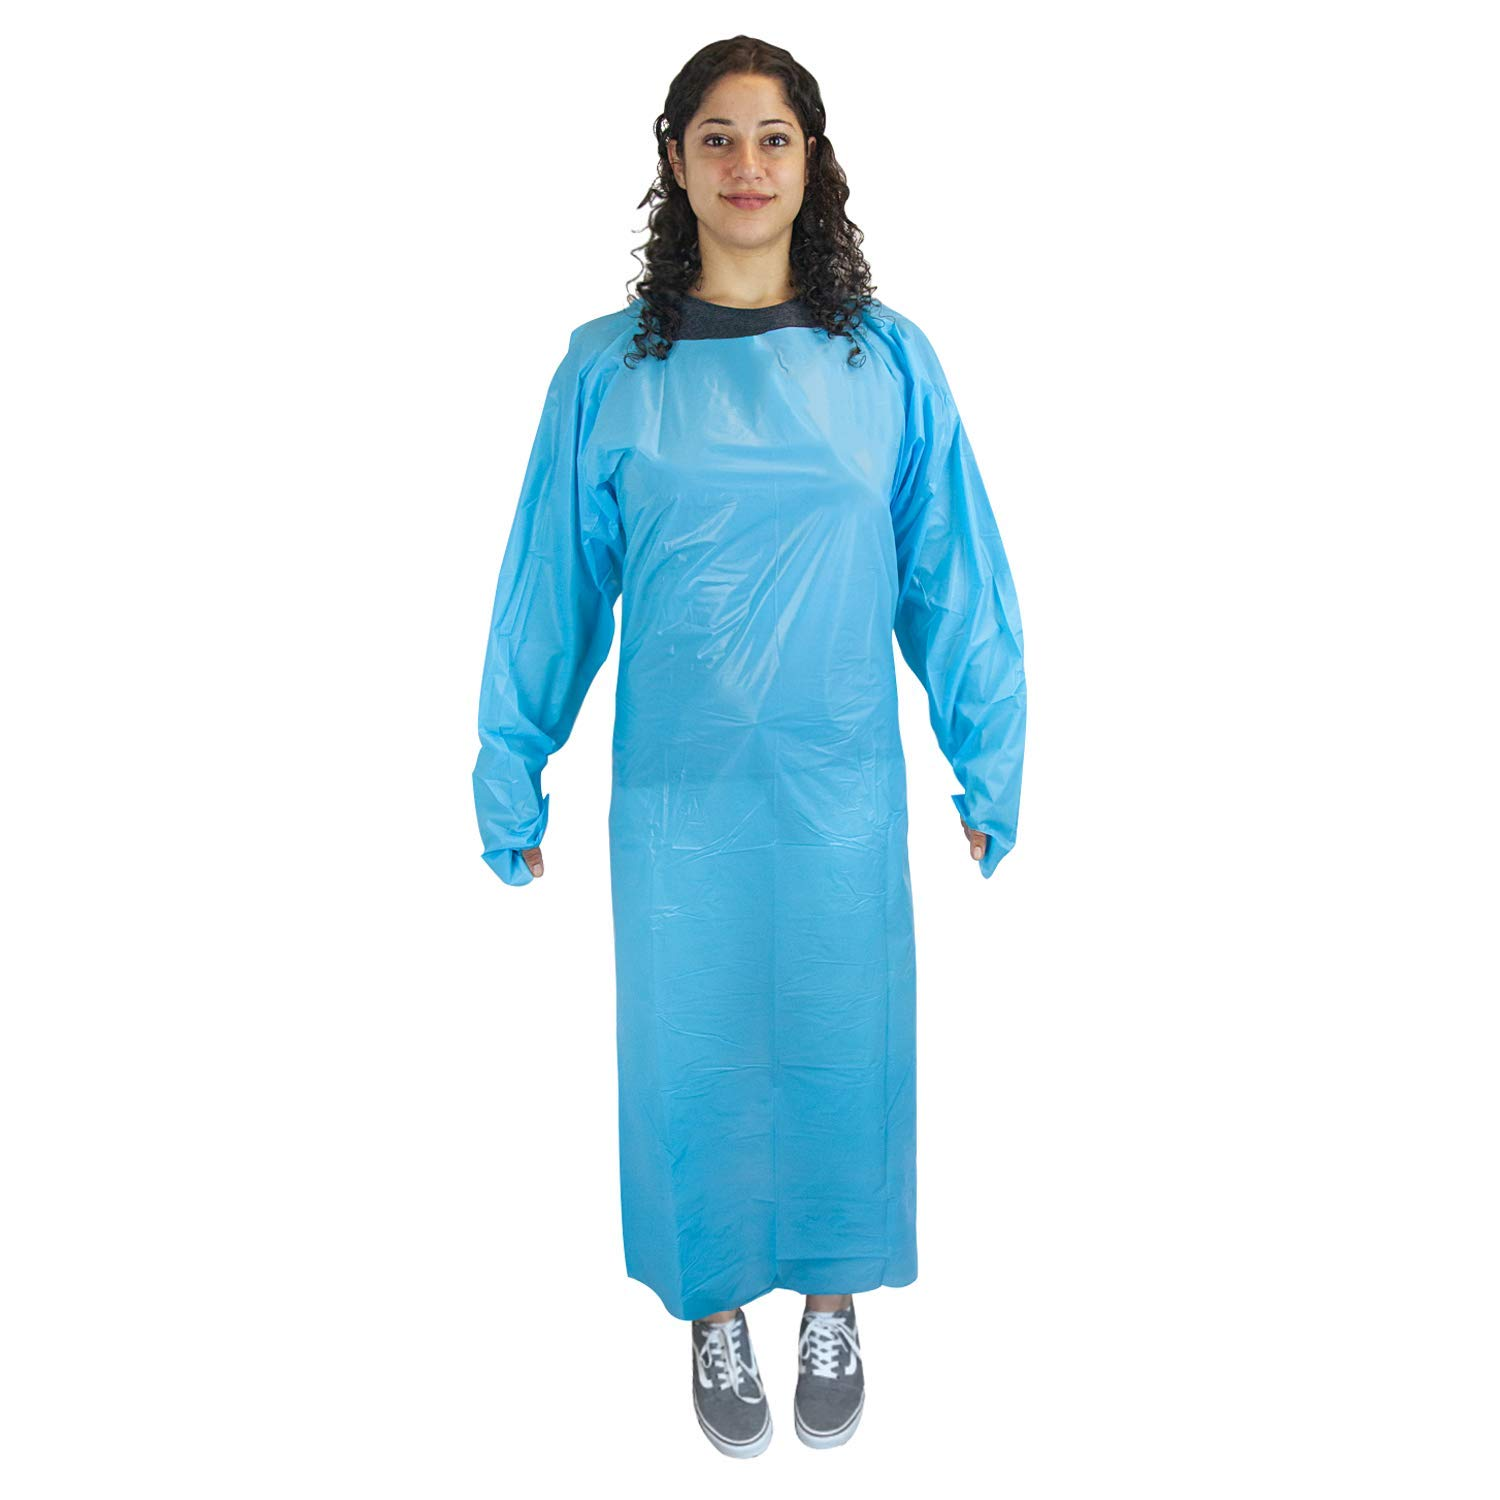 SAFE HANDLER Disposable Sleeve Gown | Open Back with Thumb Loops, 0.5 MIL, Blue, 100 Count by Safe Handler (Image #2)